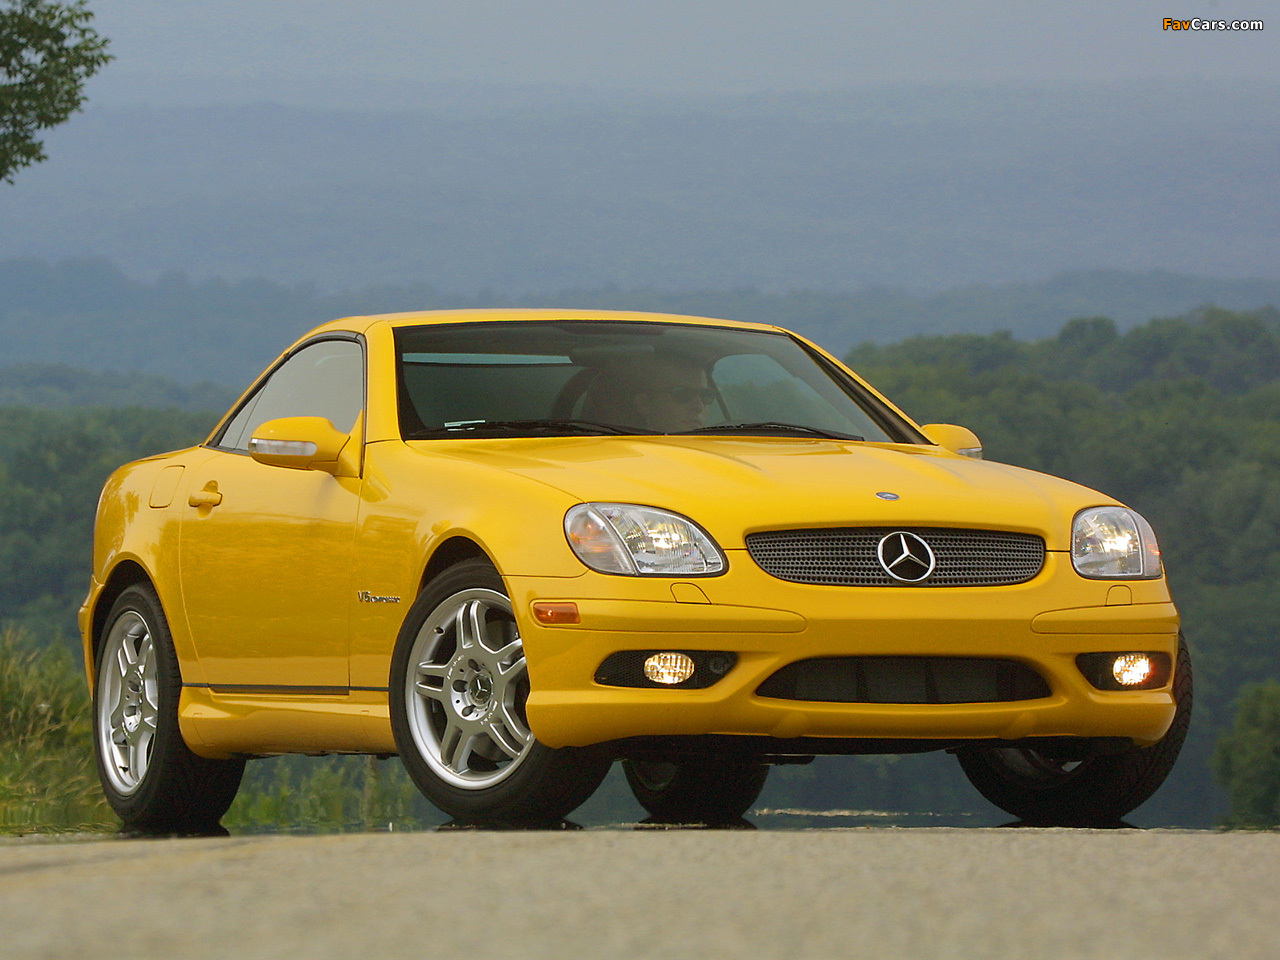 mercedes benz slk 32 amg us spec r170 2001 04 wallpapers. Black Bedroom Furniture Sets. Home Design Ideas